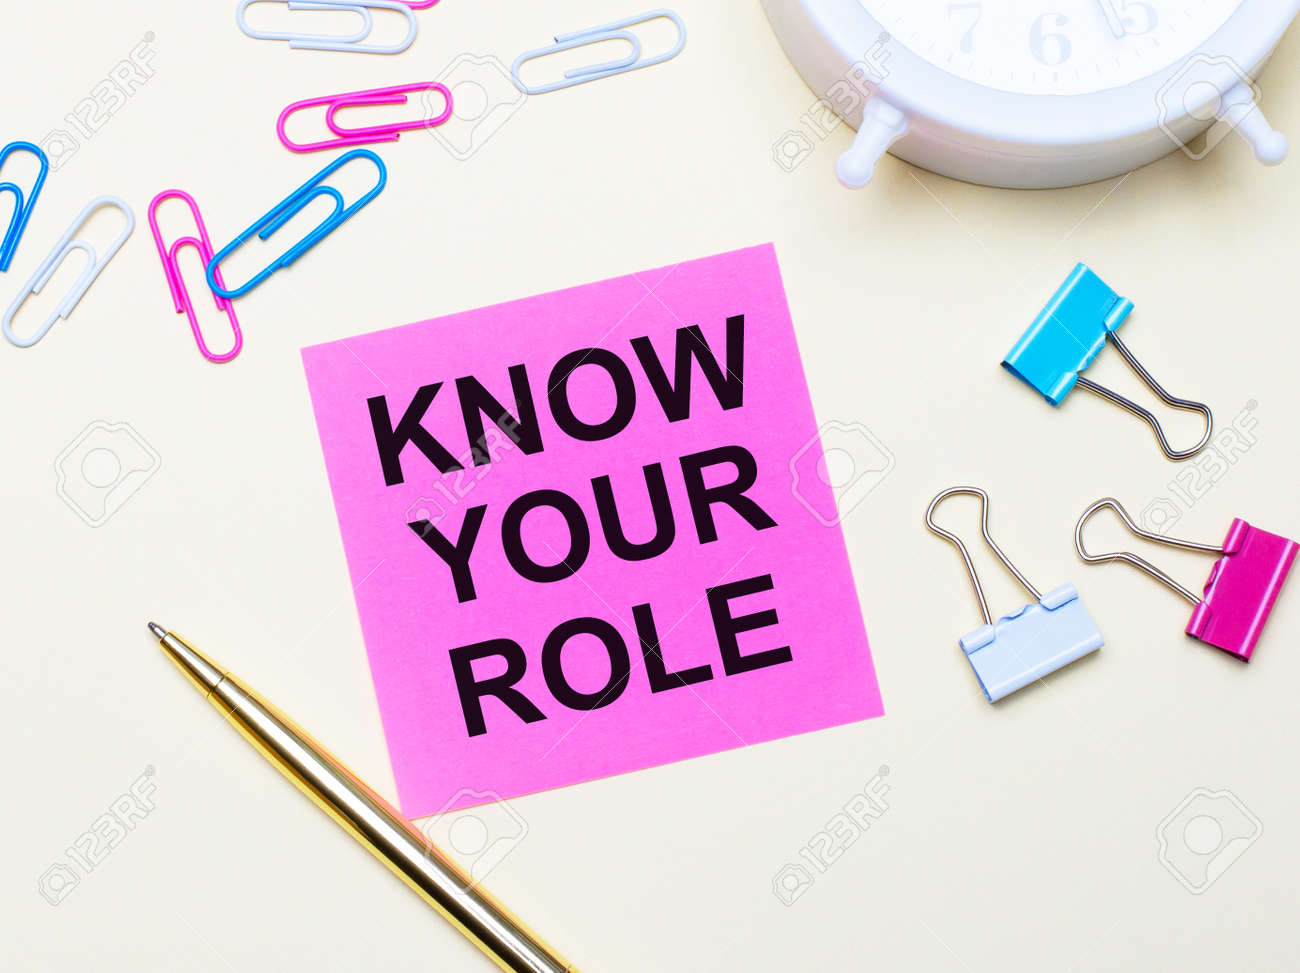 On a light background, a white alarm clock, pink, blue and white paper clips, a golden pen and a pink sticker with the text KNOW YOUR ROLE - 172494897